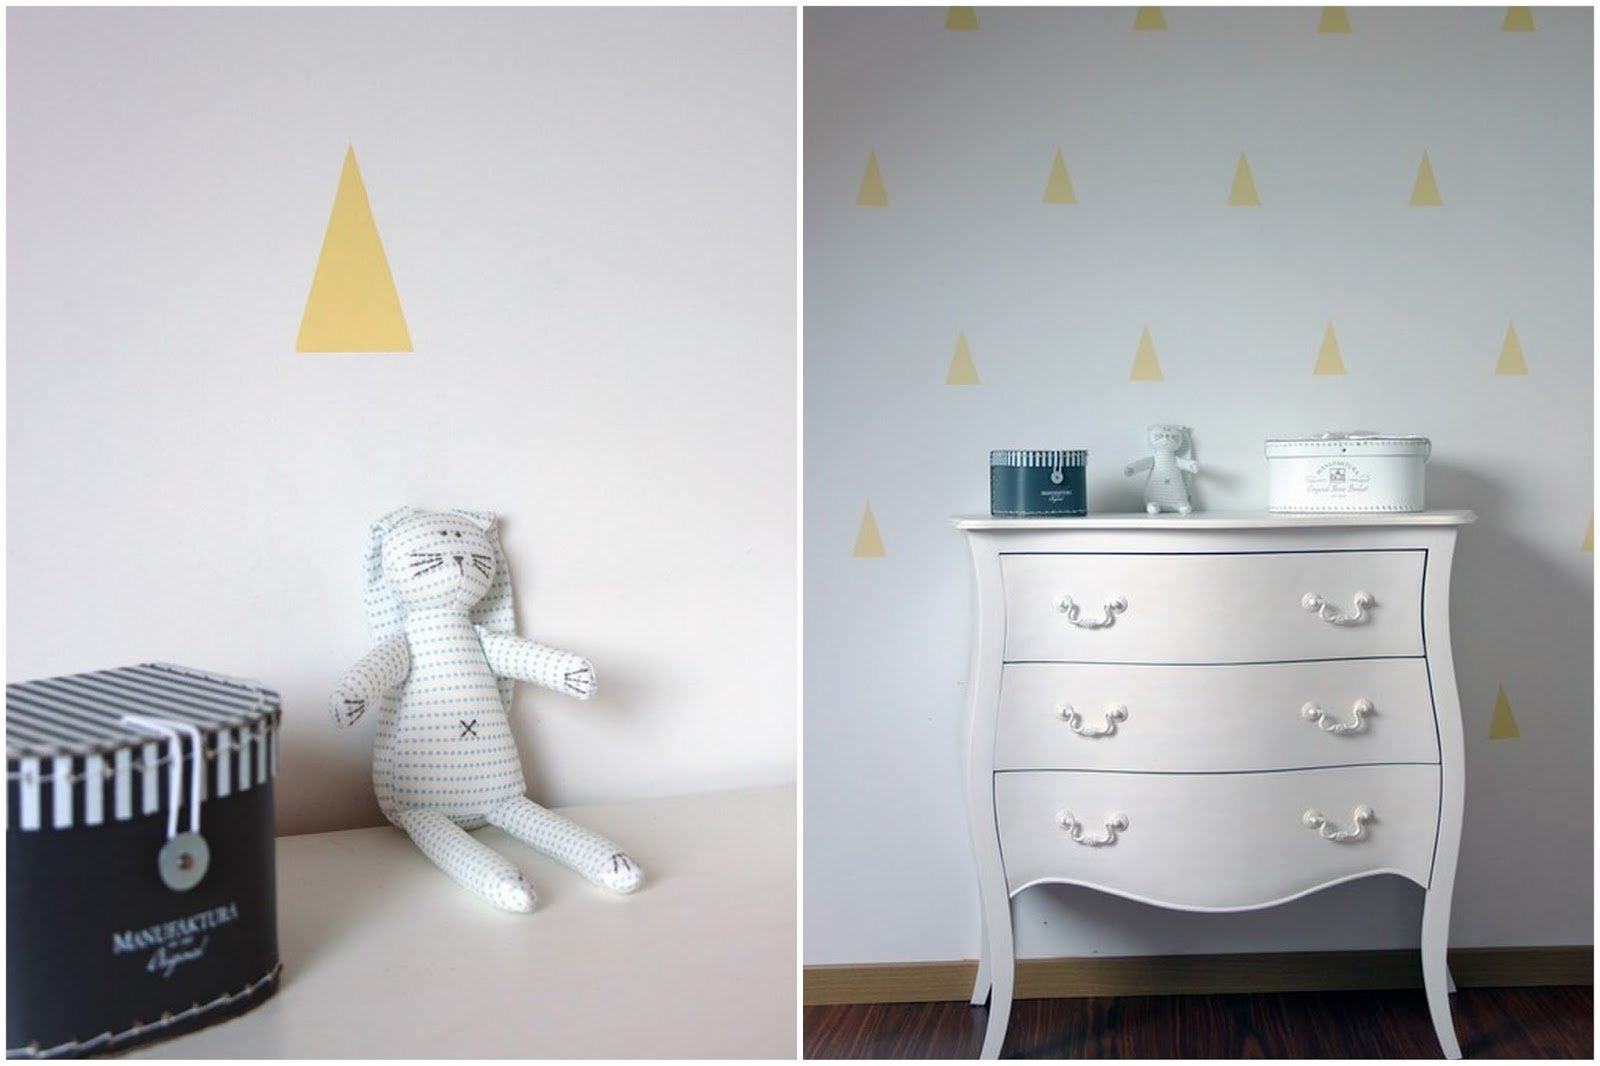 Décoration mur stickers triangle | girlystan.com